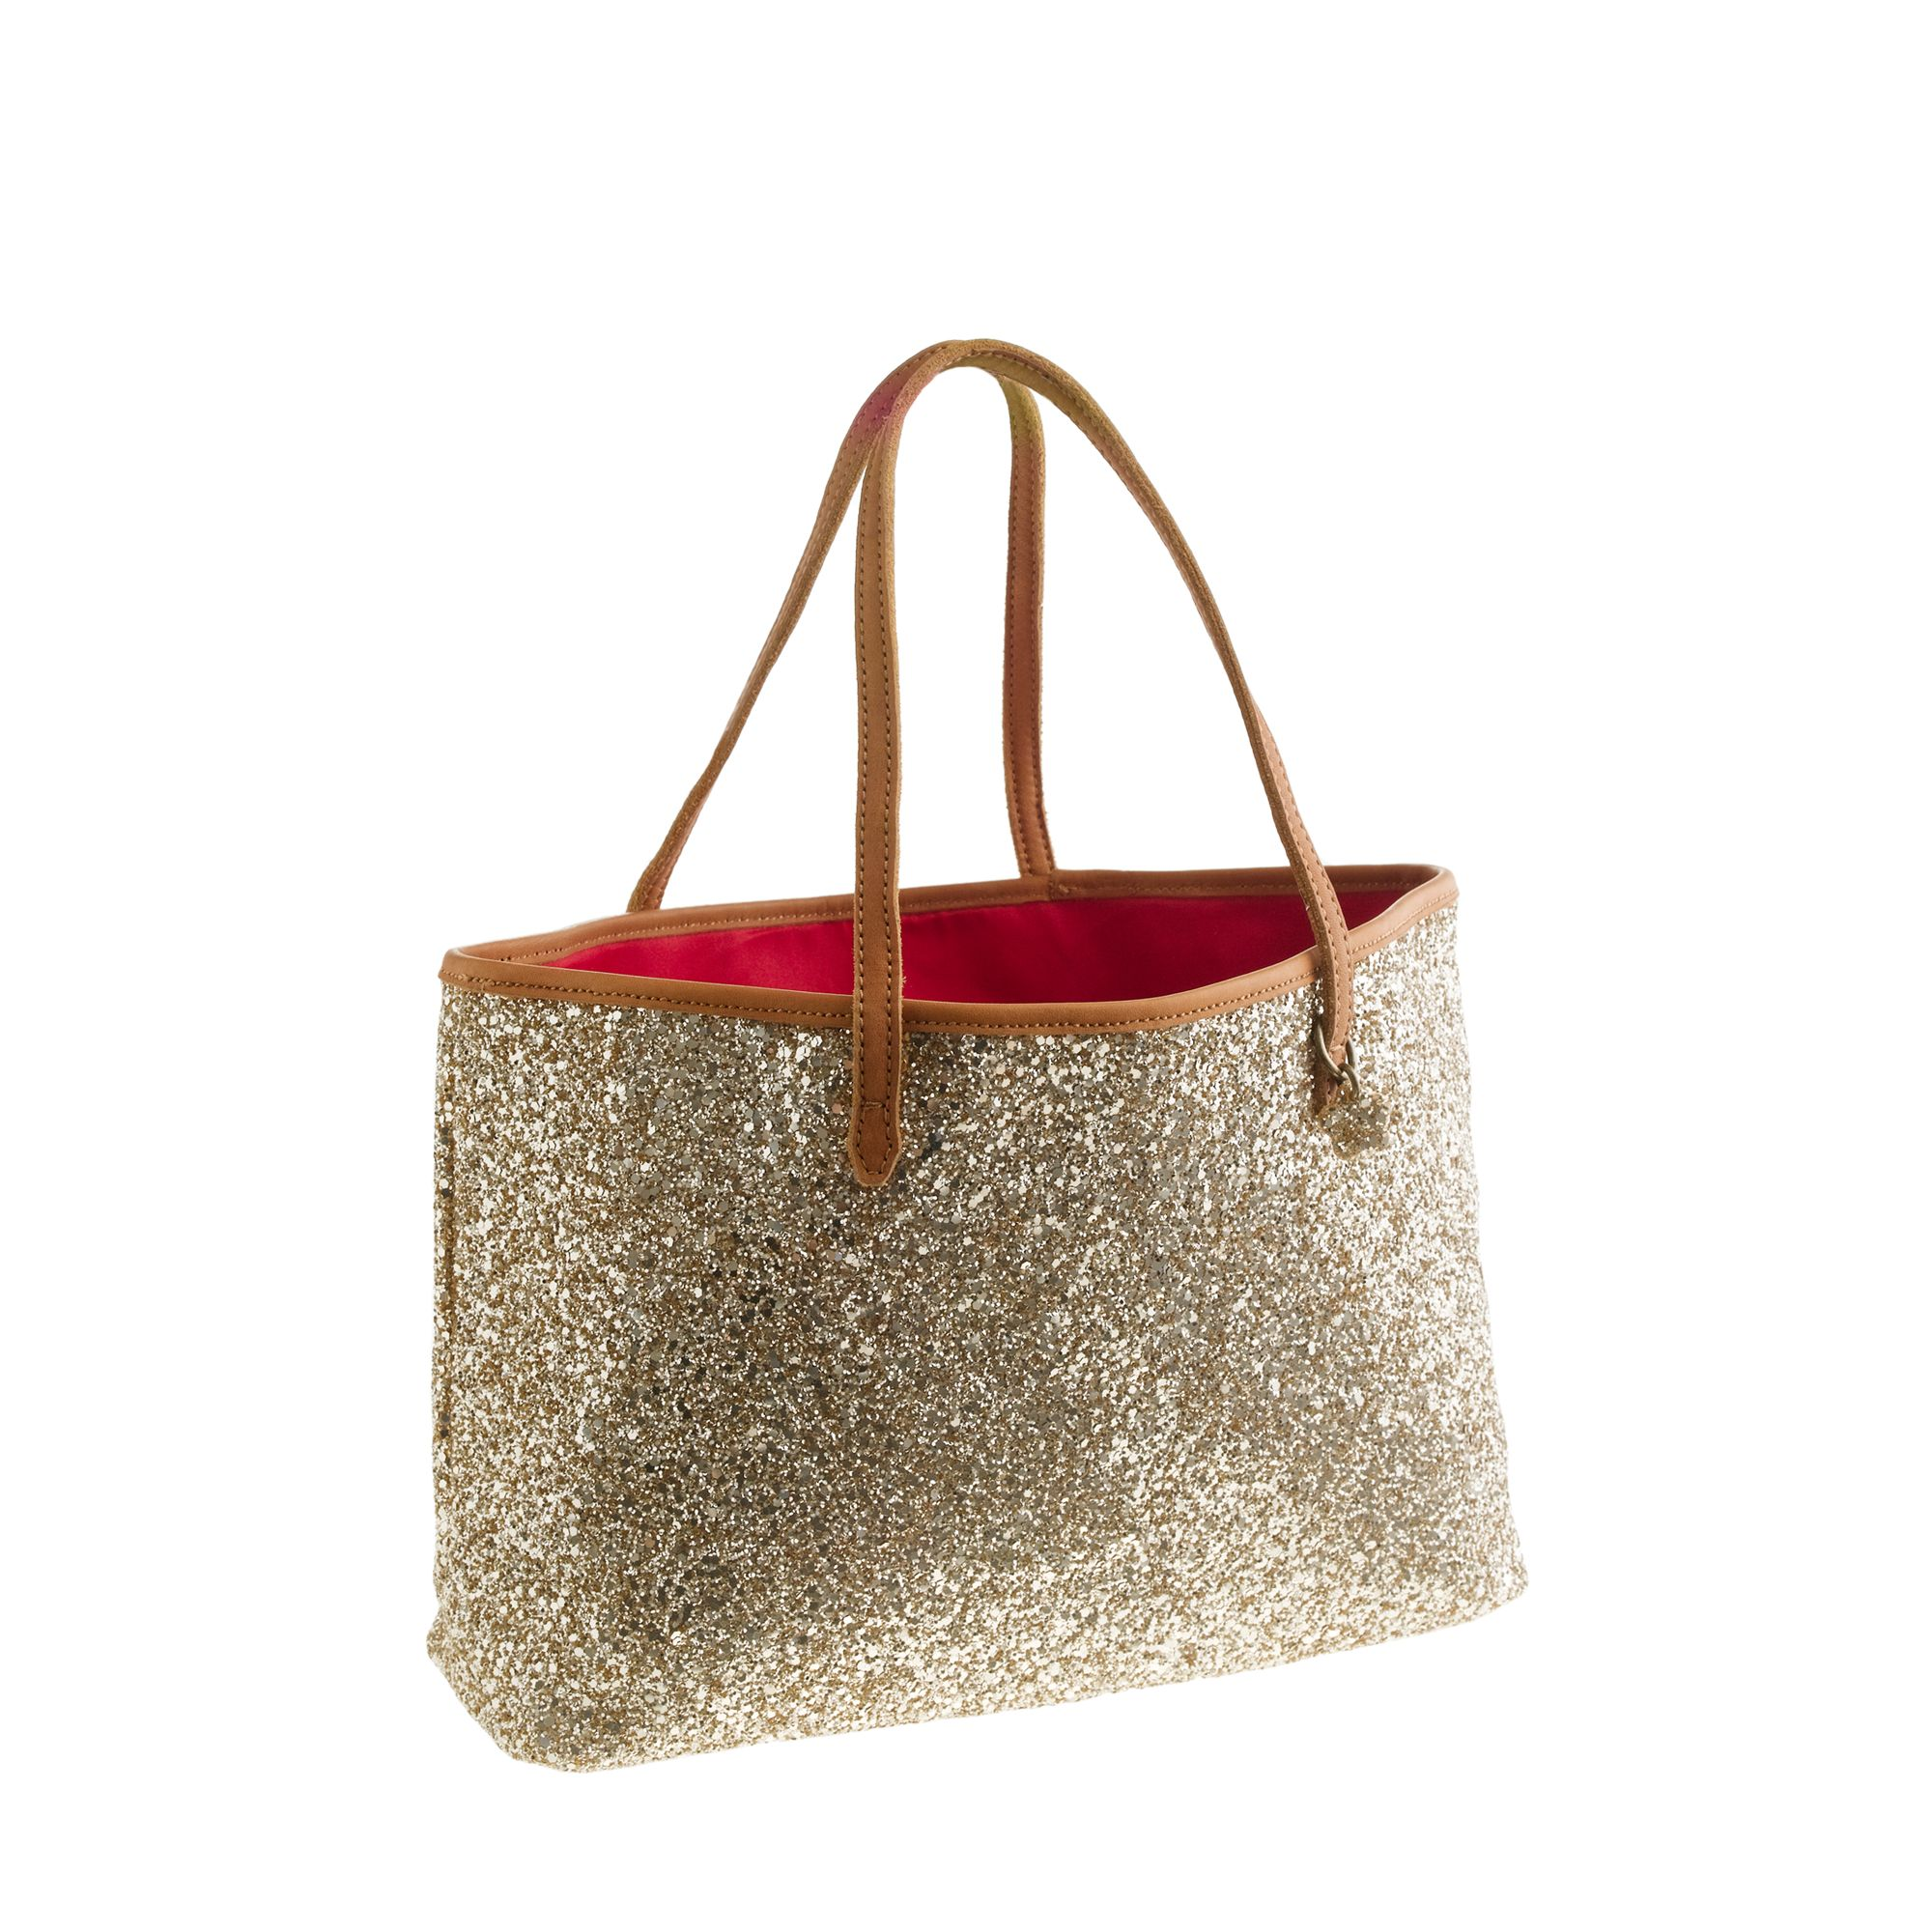 Kate Spade Canvas Tote Bags